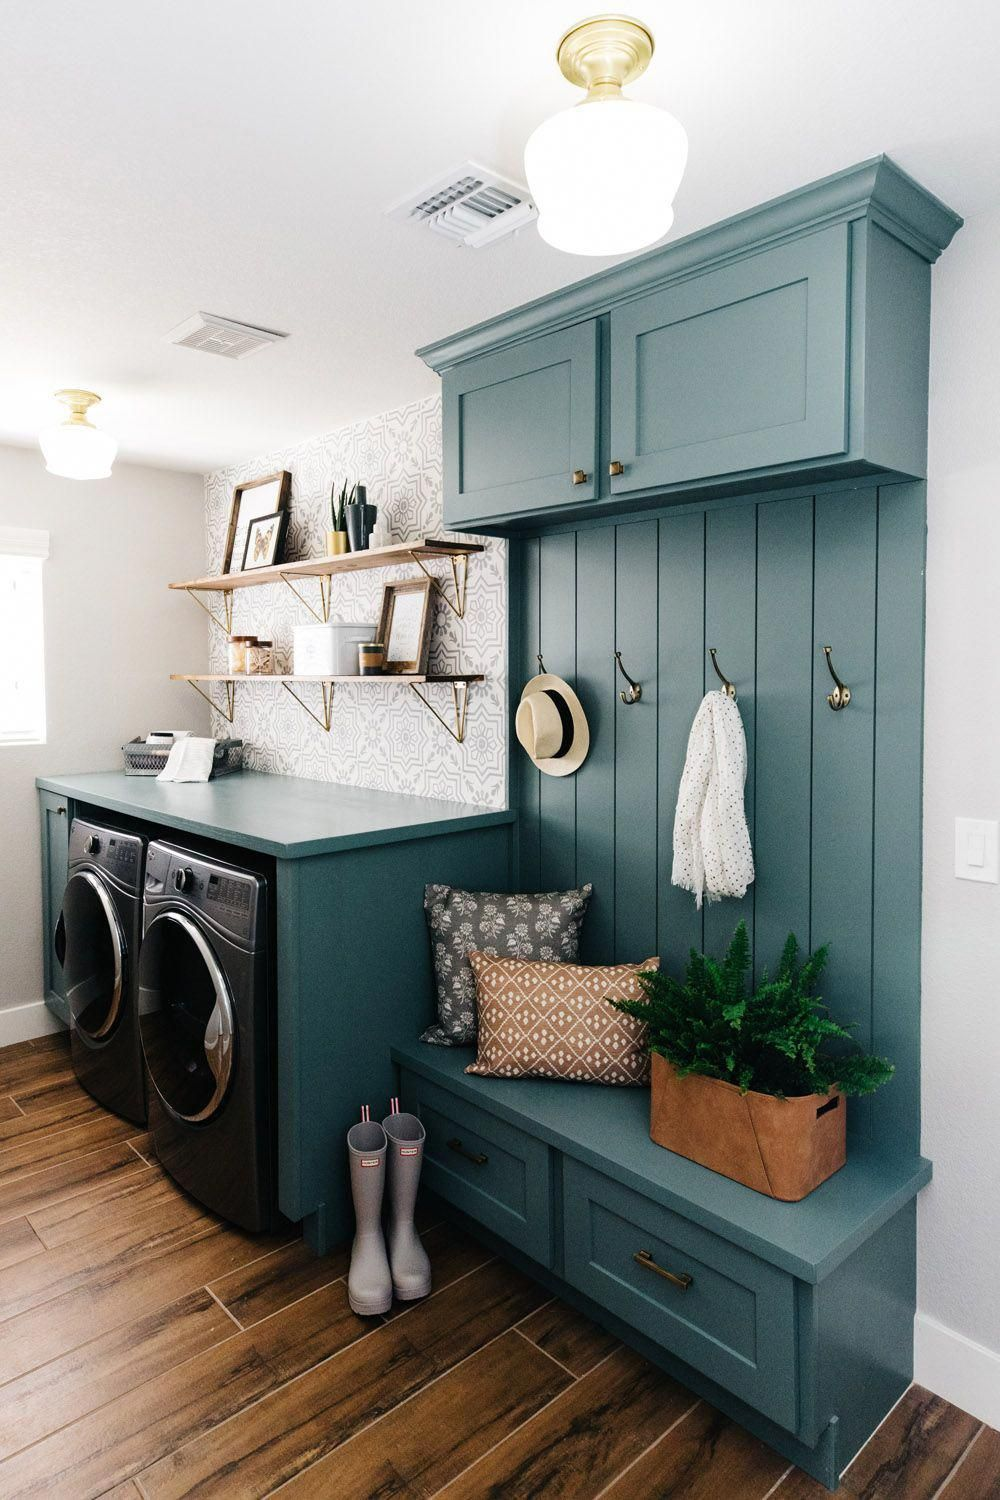 laundry room, wooden floor, dark green wooden board wih cabinet, drawers, floating shelevs